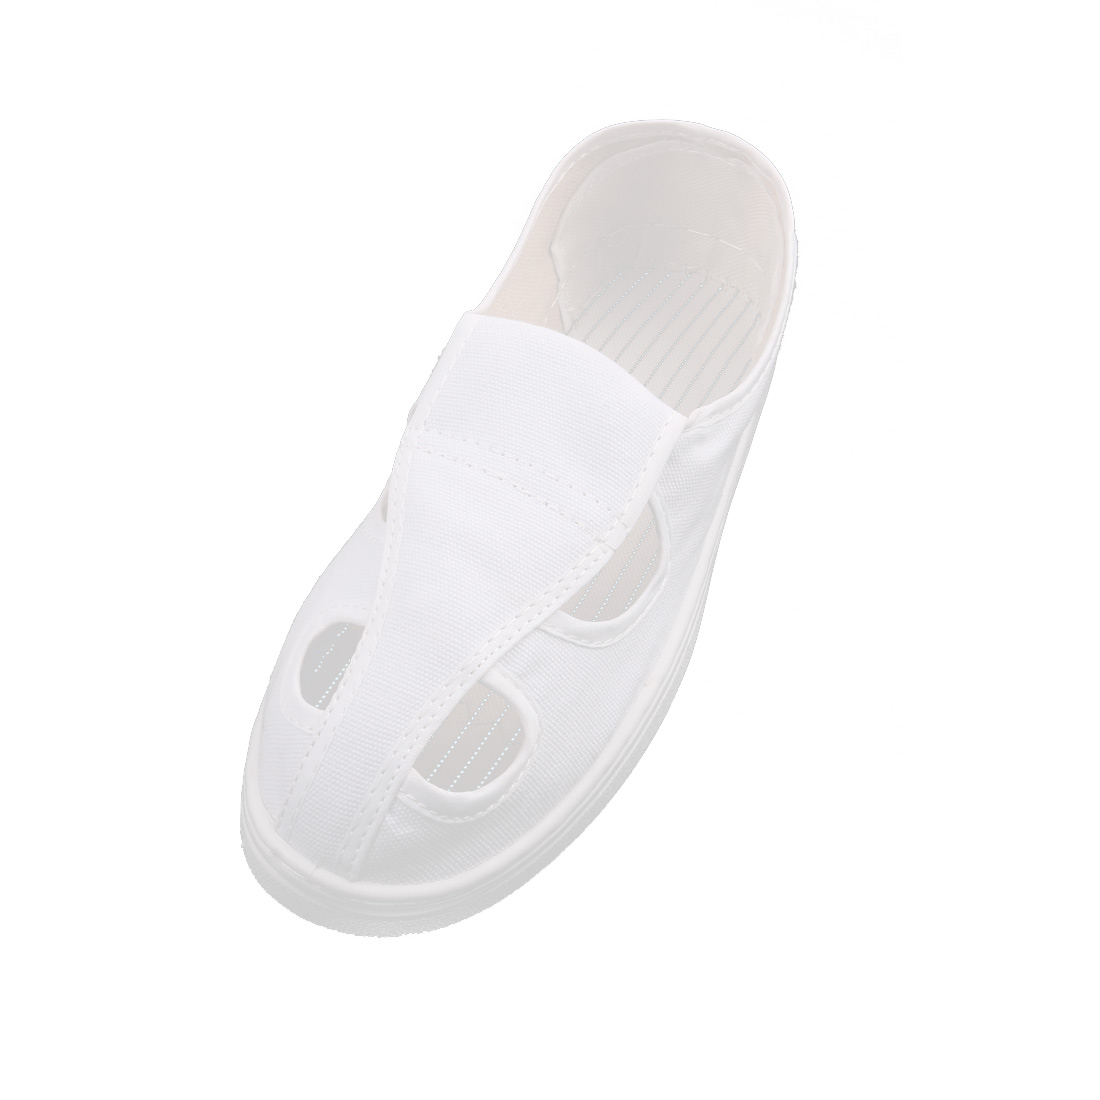 US10 UK9 EU44 PU Bottom Nonslip Flat Sole Anti-static 4-Hole Canvas Shoes White